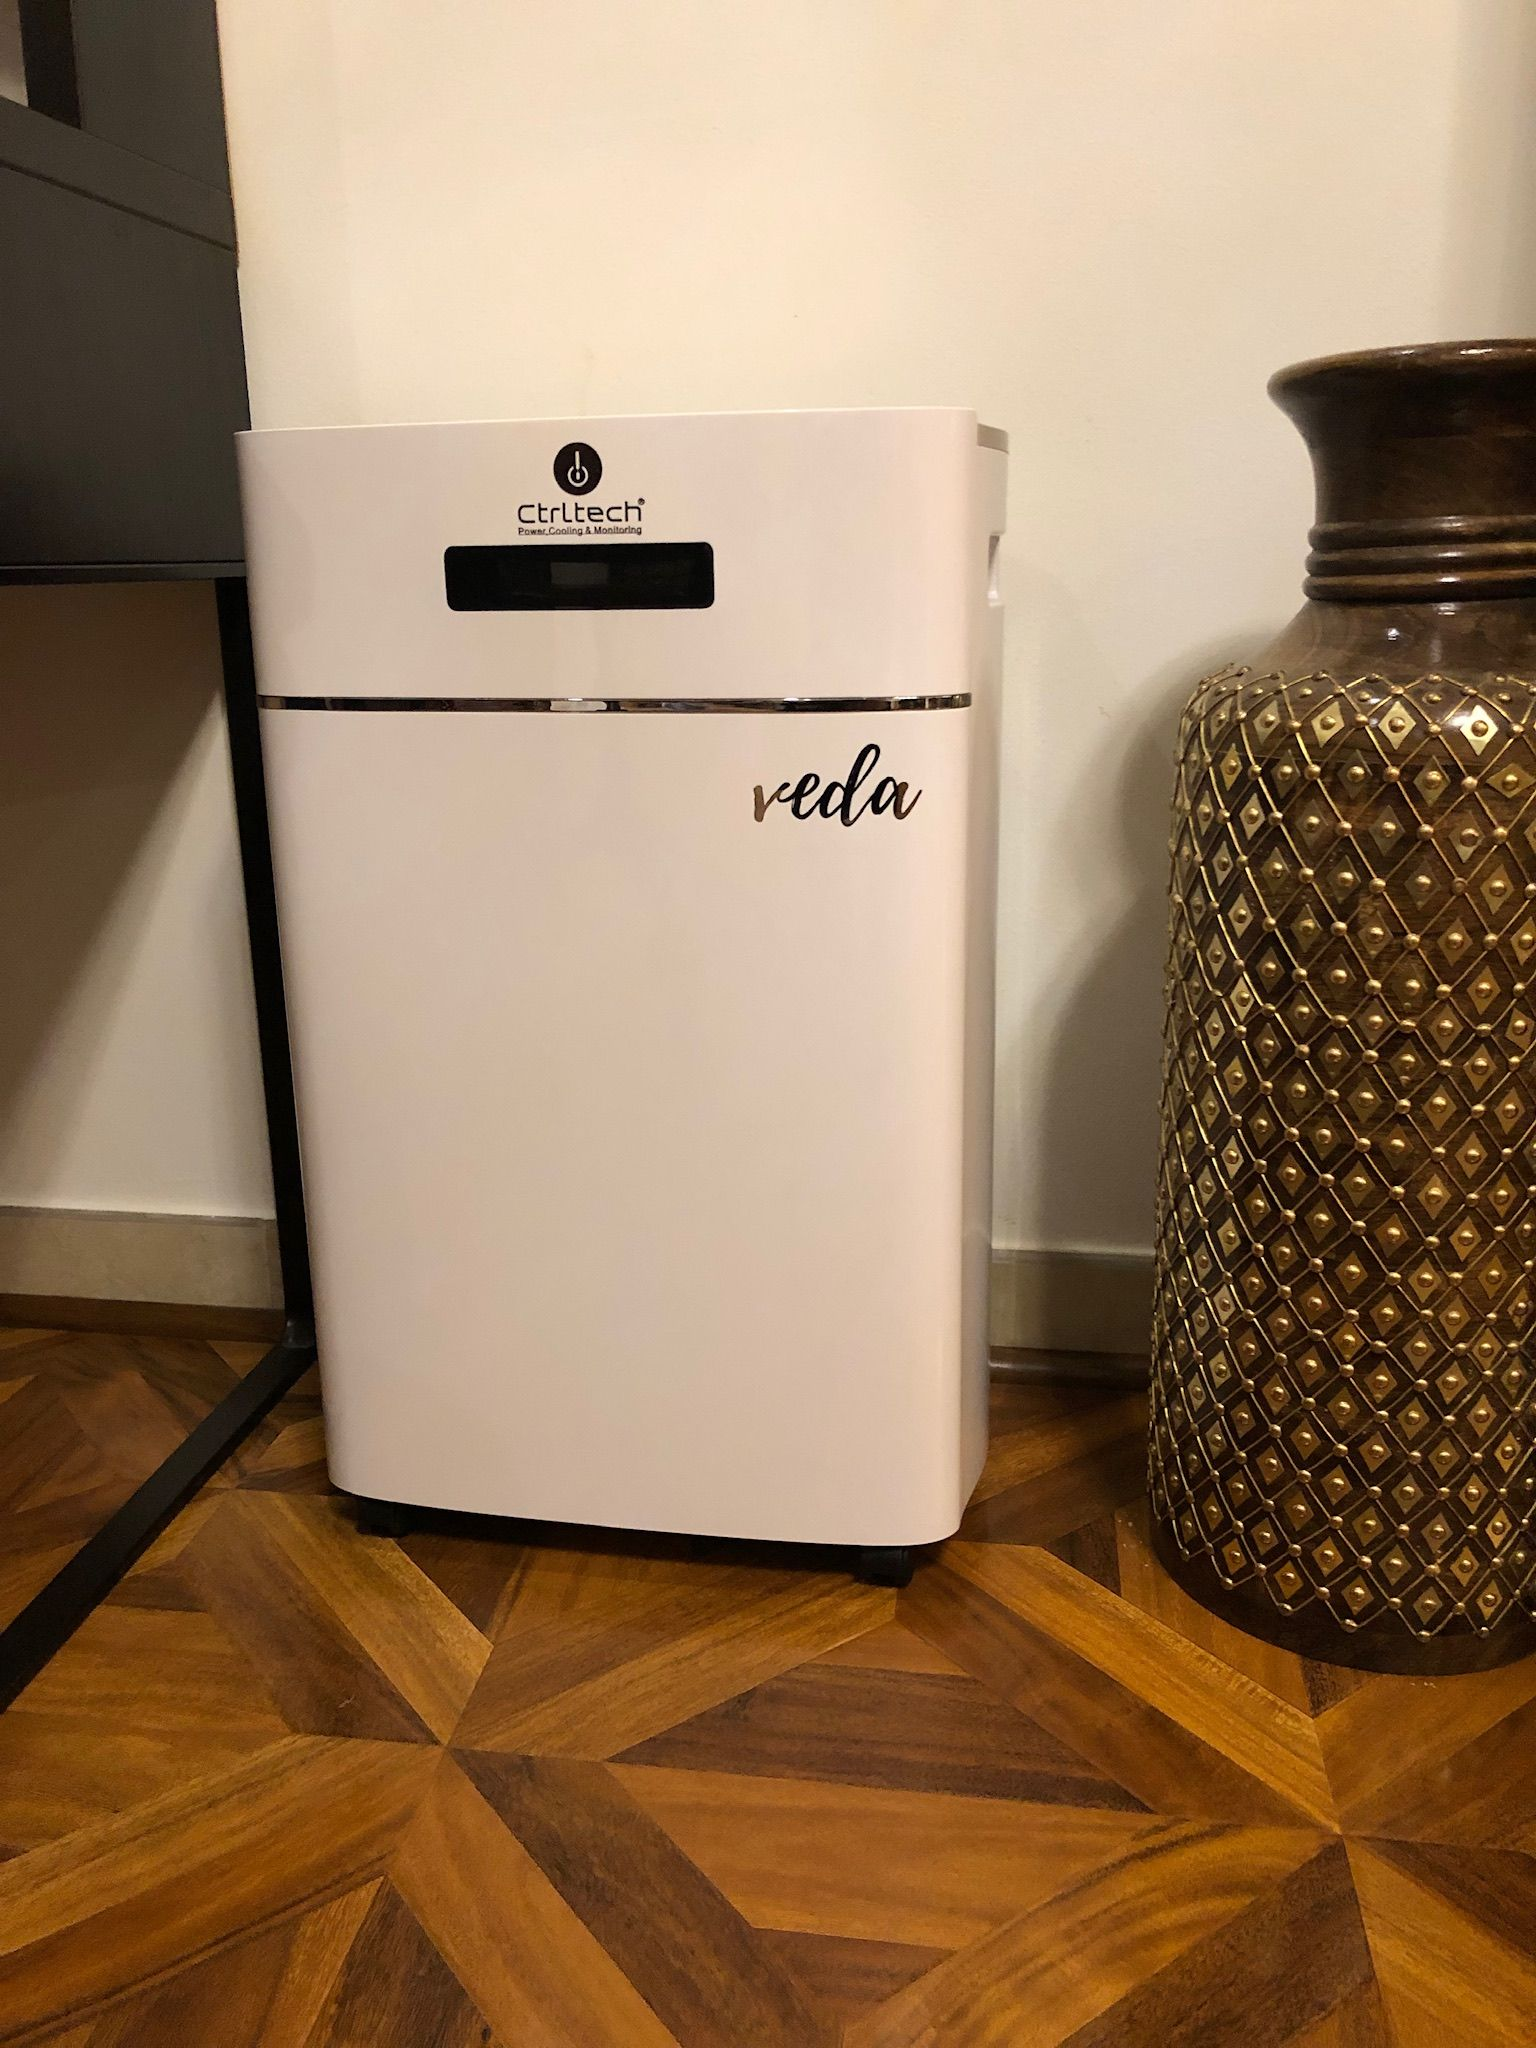 Veda Best Dehumidifier Sale For Room Dehumidifiers Glossy White Design